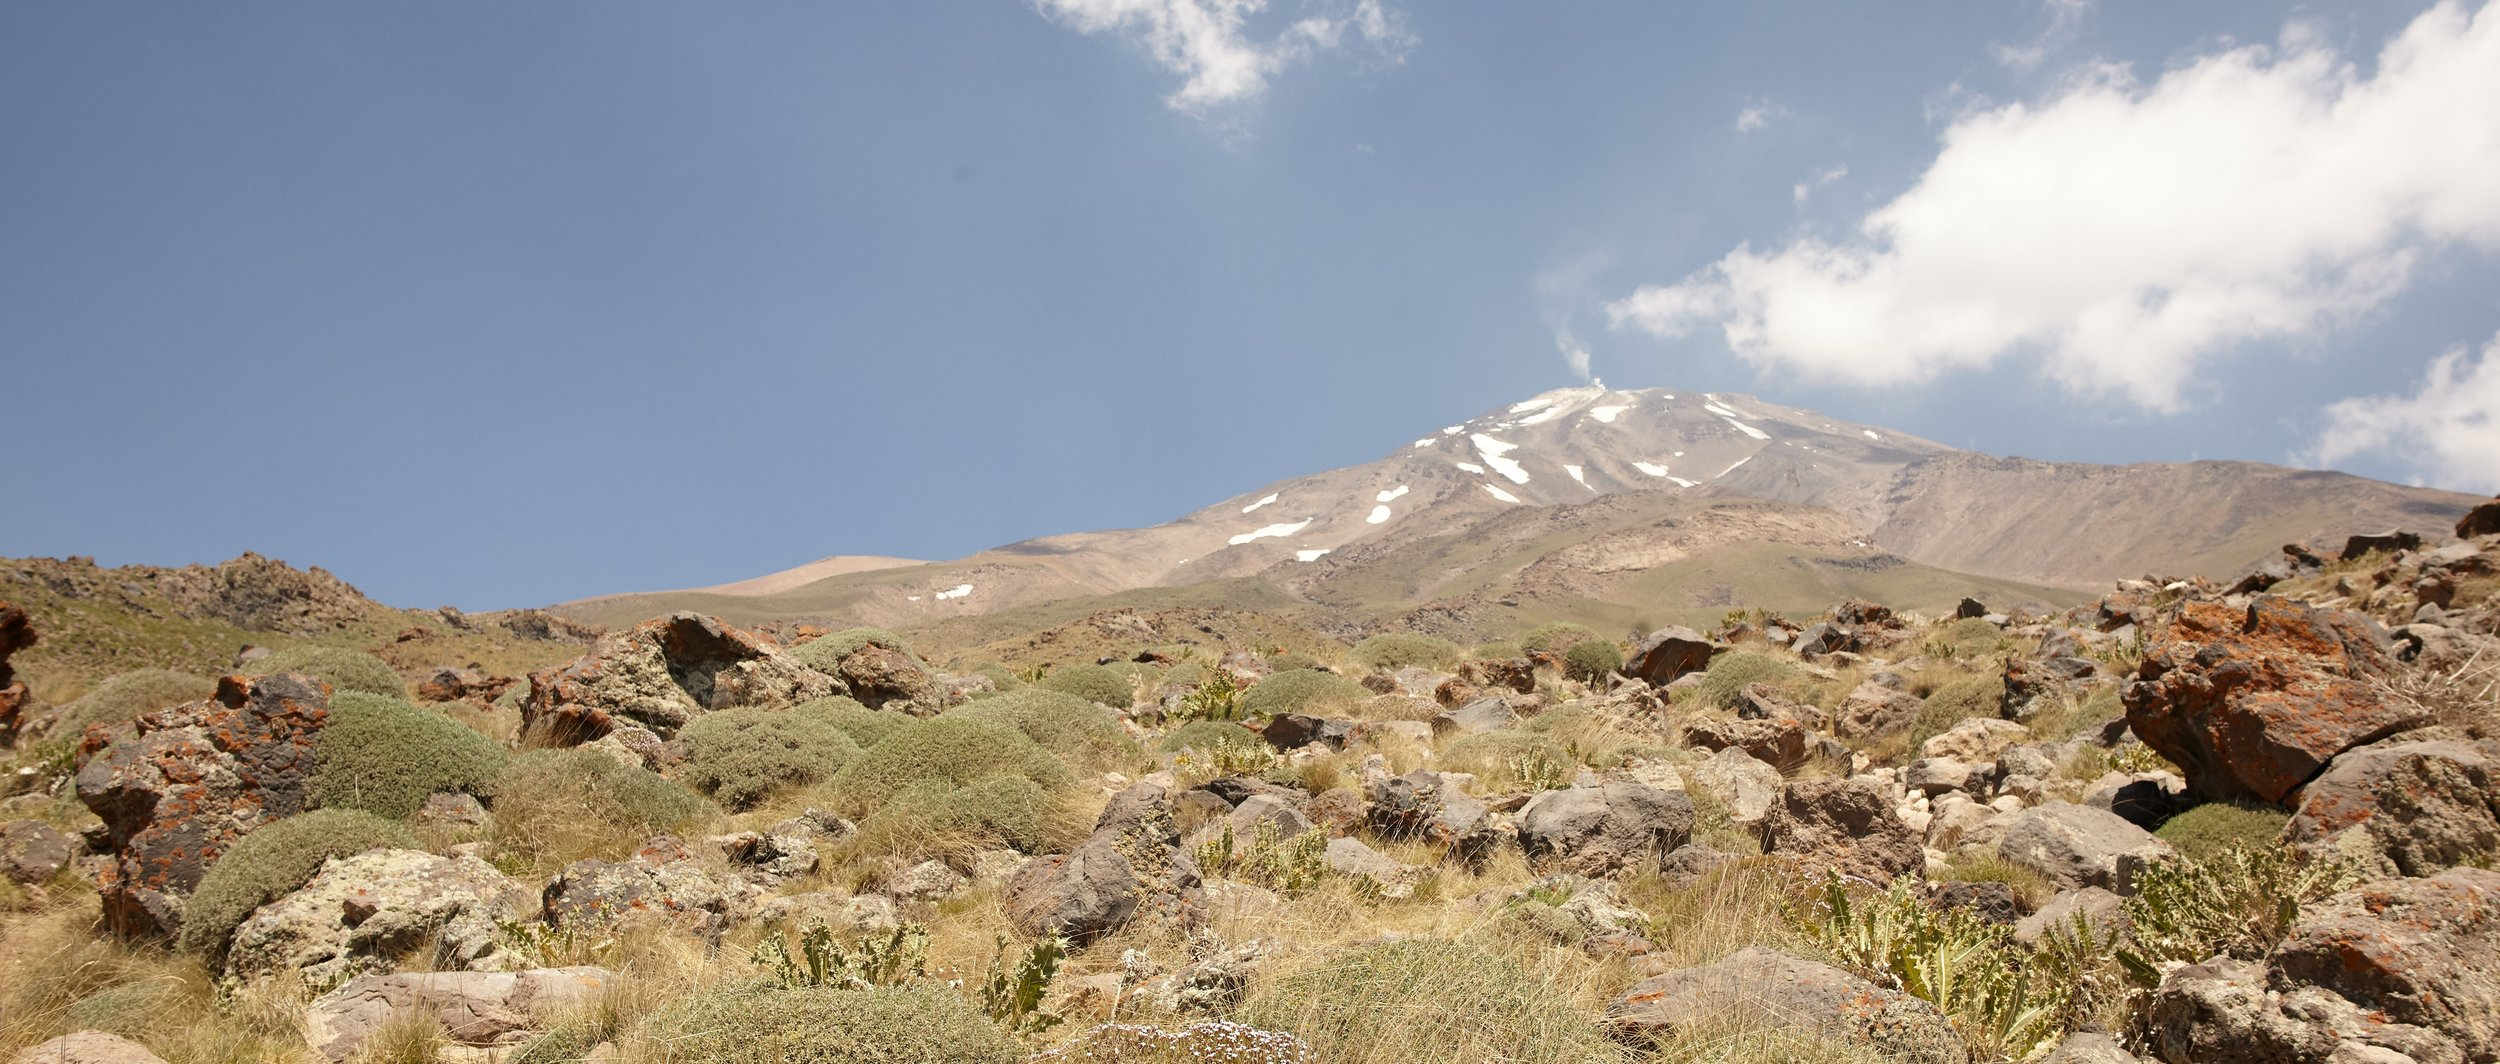 Mt. Damavand as seen from the entrance of the National Park with steam coming from its peak